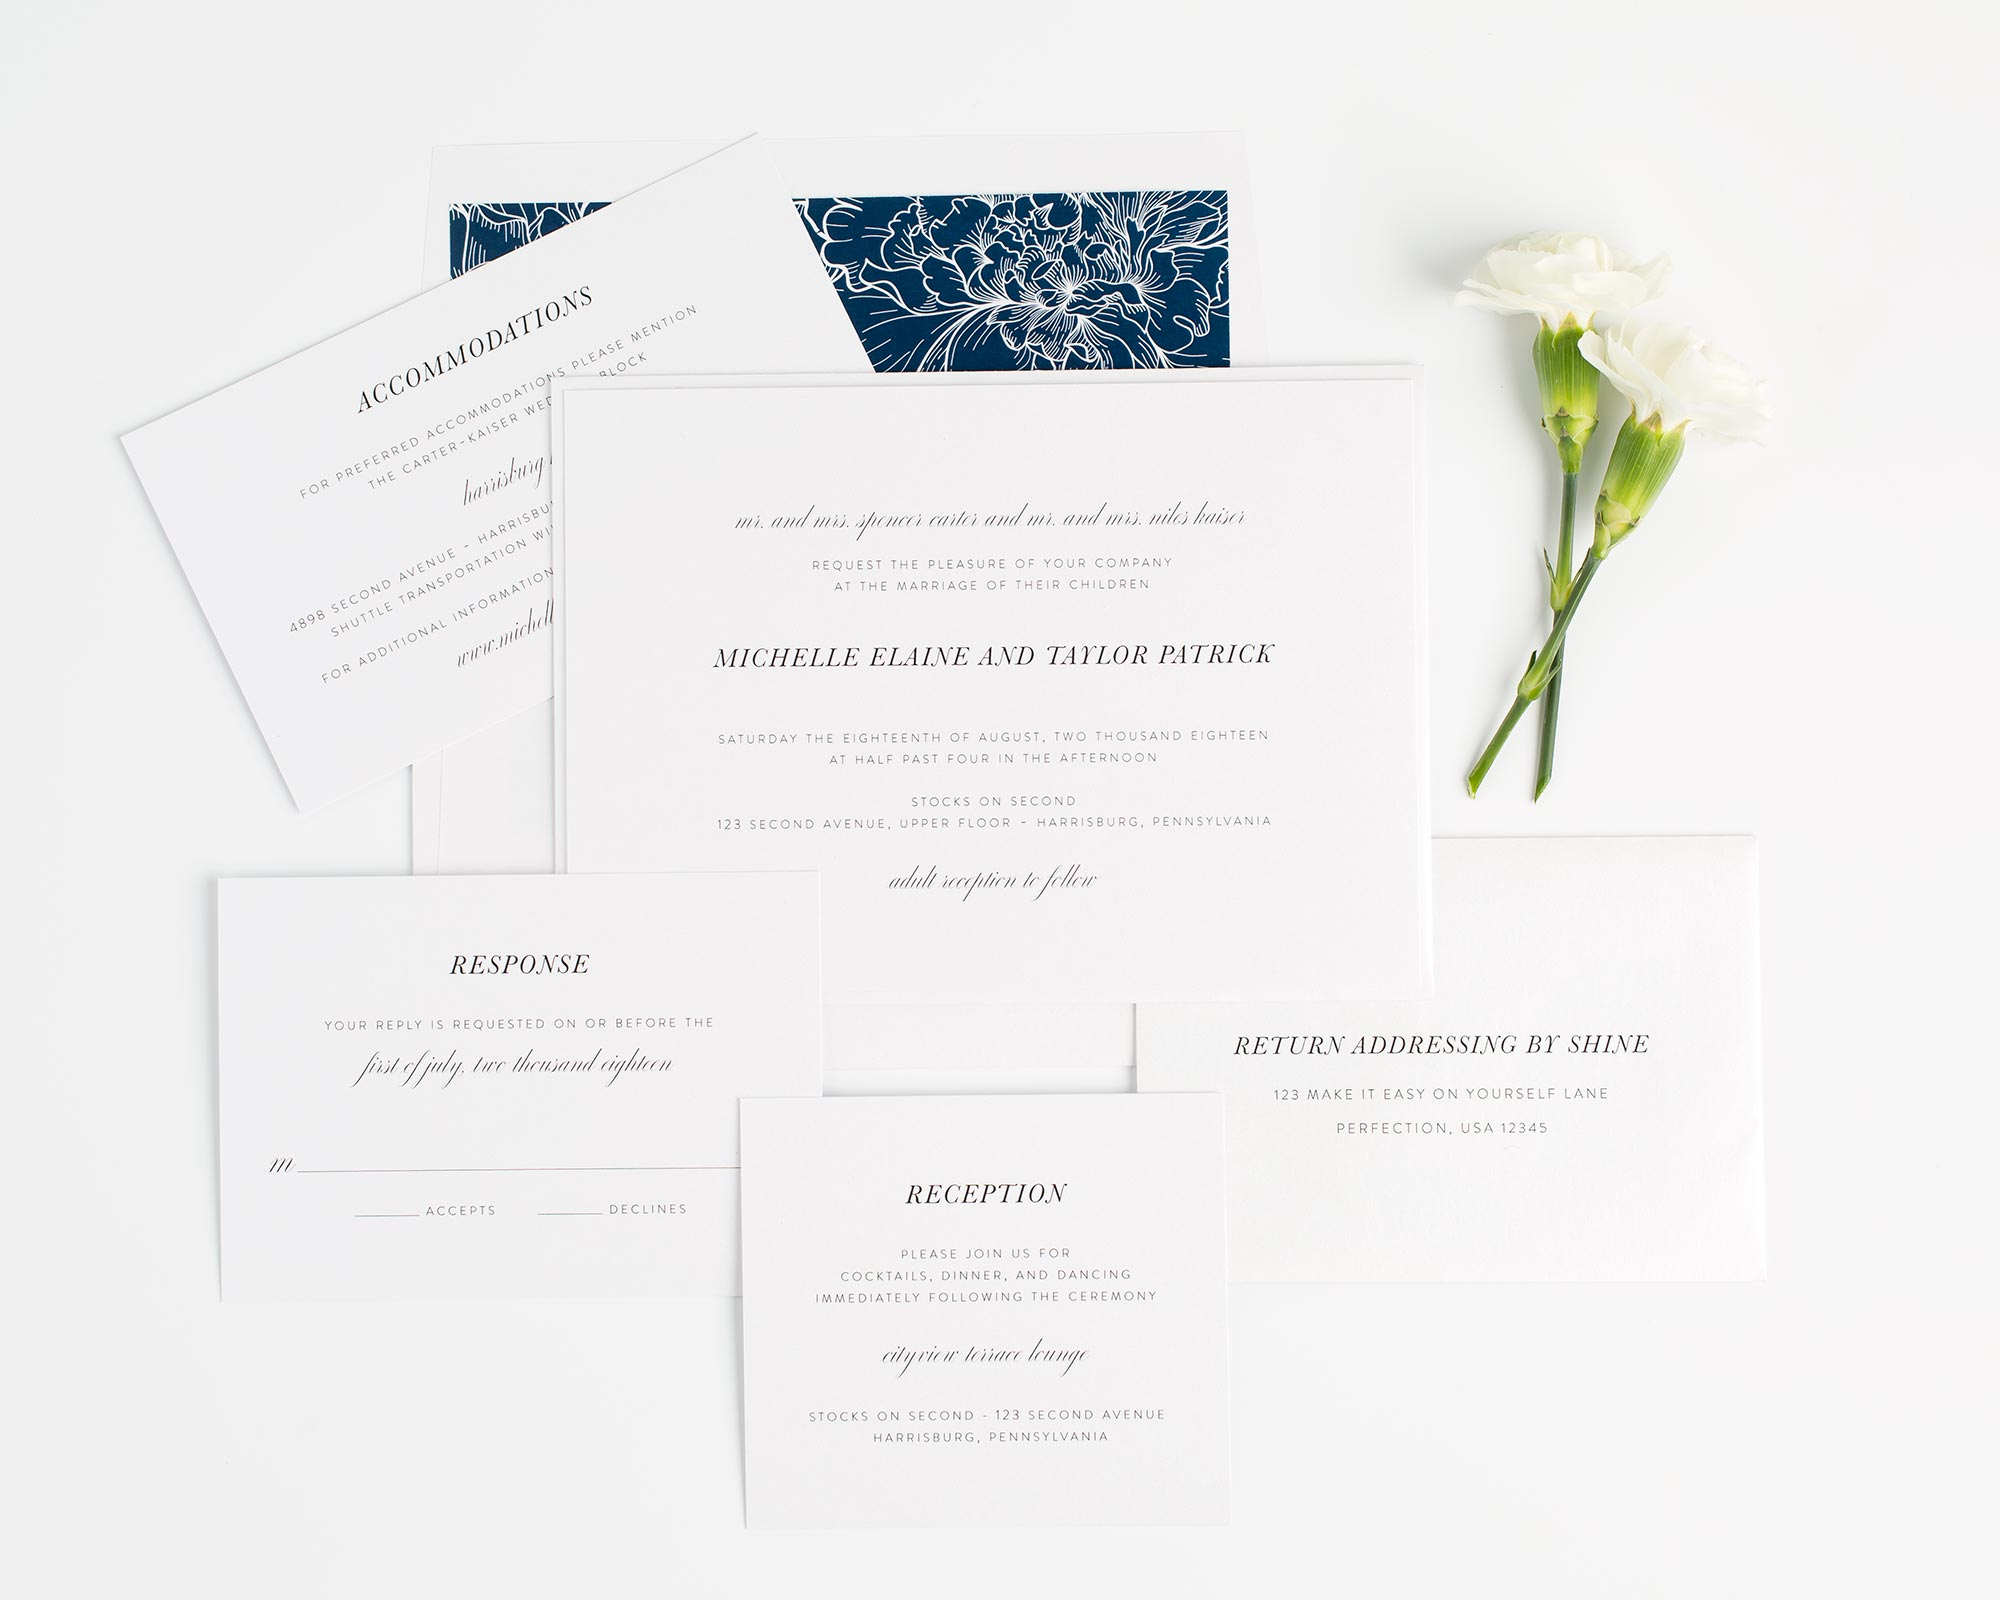 Modern and Chic Wedding Invitations in Navy